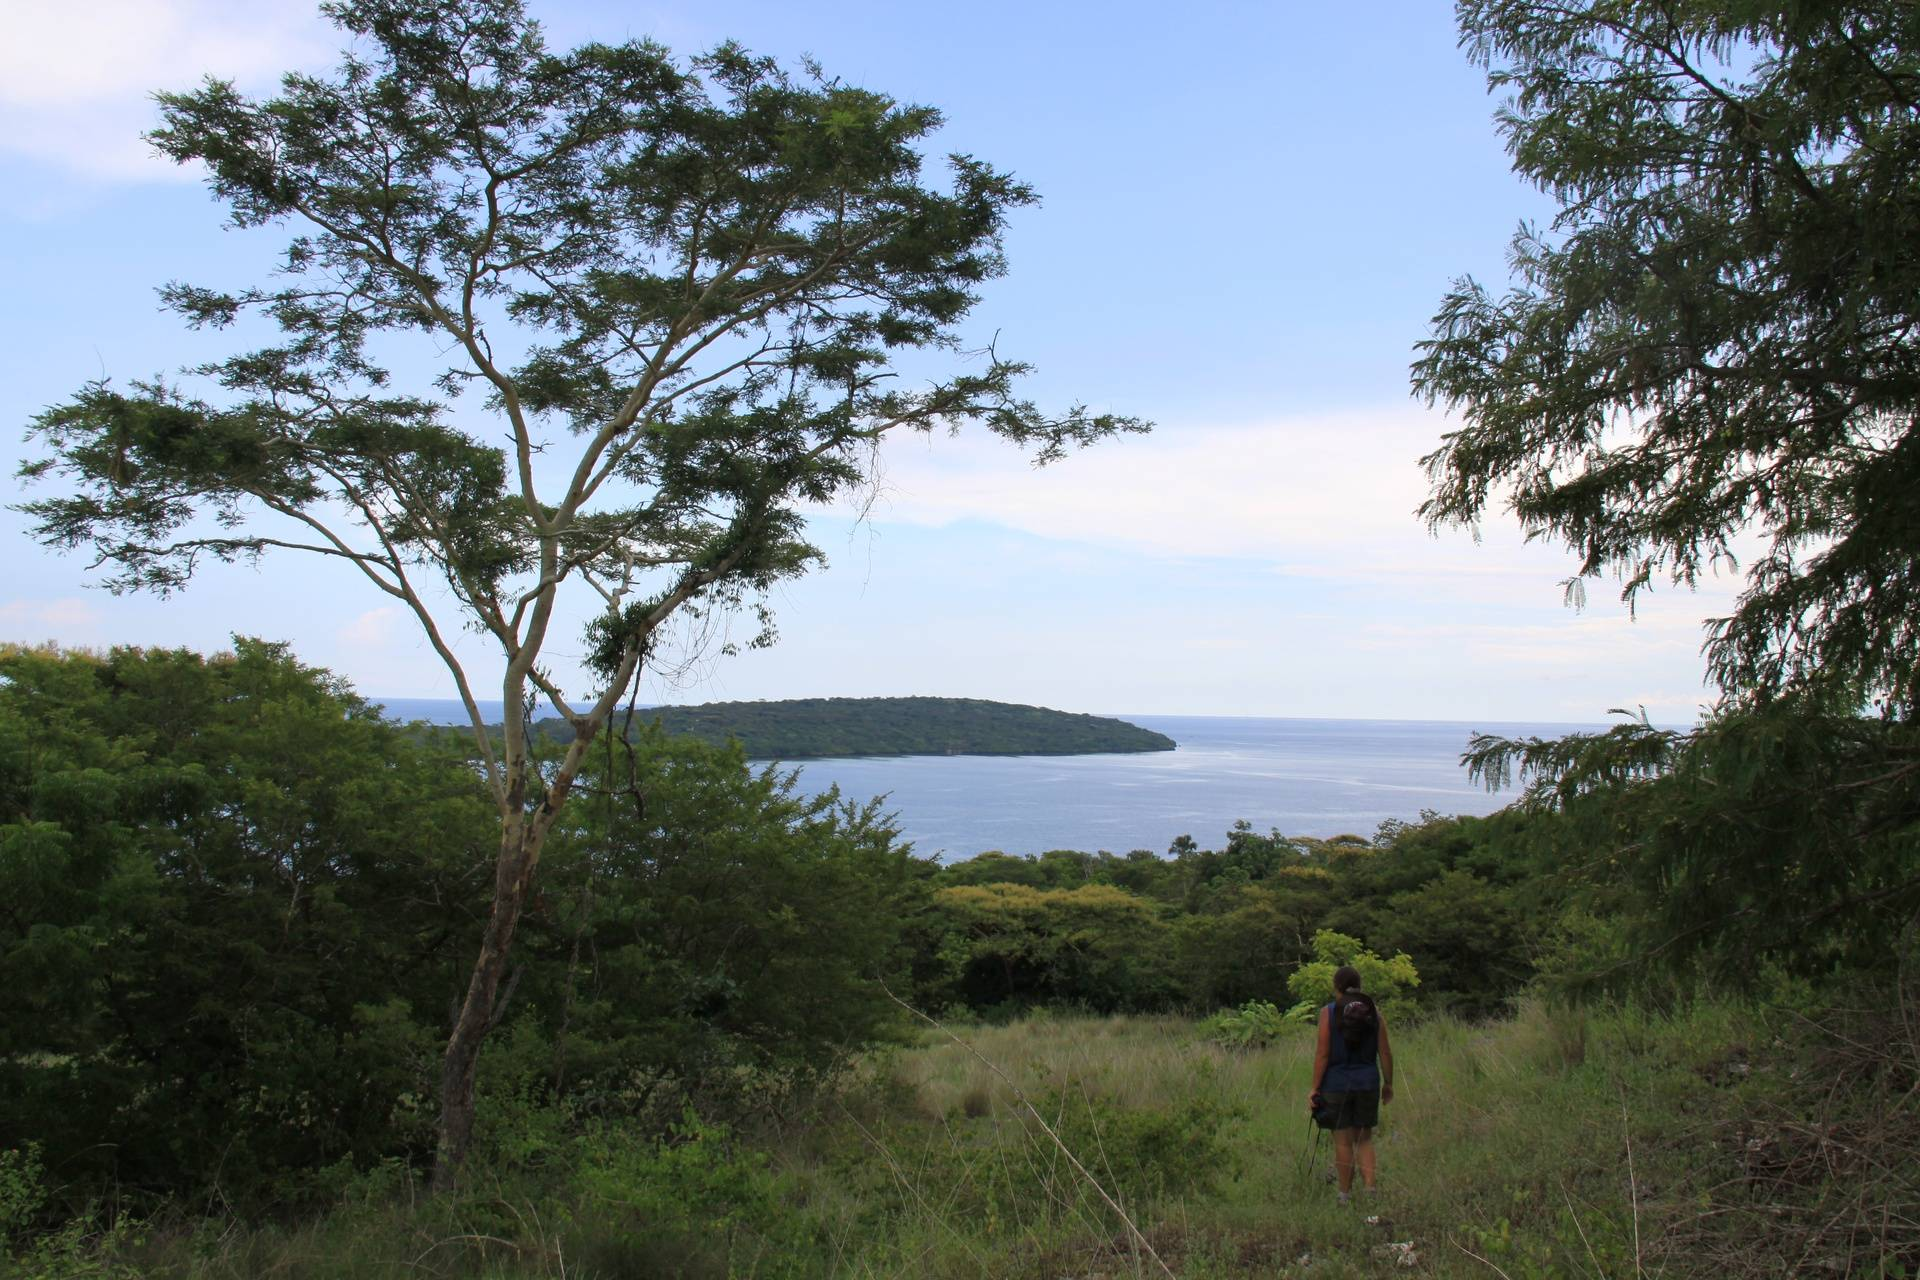 Noëlle Gunst looking for ebony langurs during a transect survey in the Prapat Agung peninsula (West Bali National Park, July 2010)